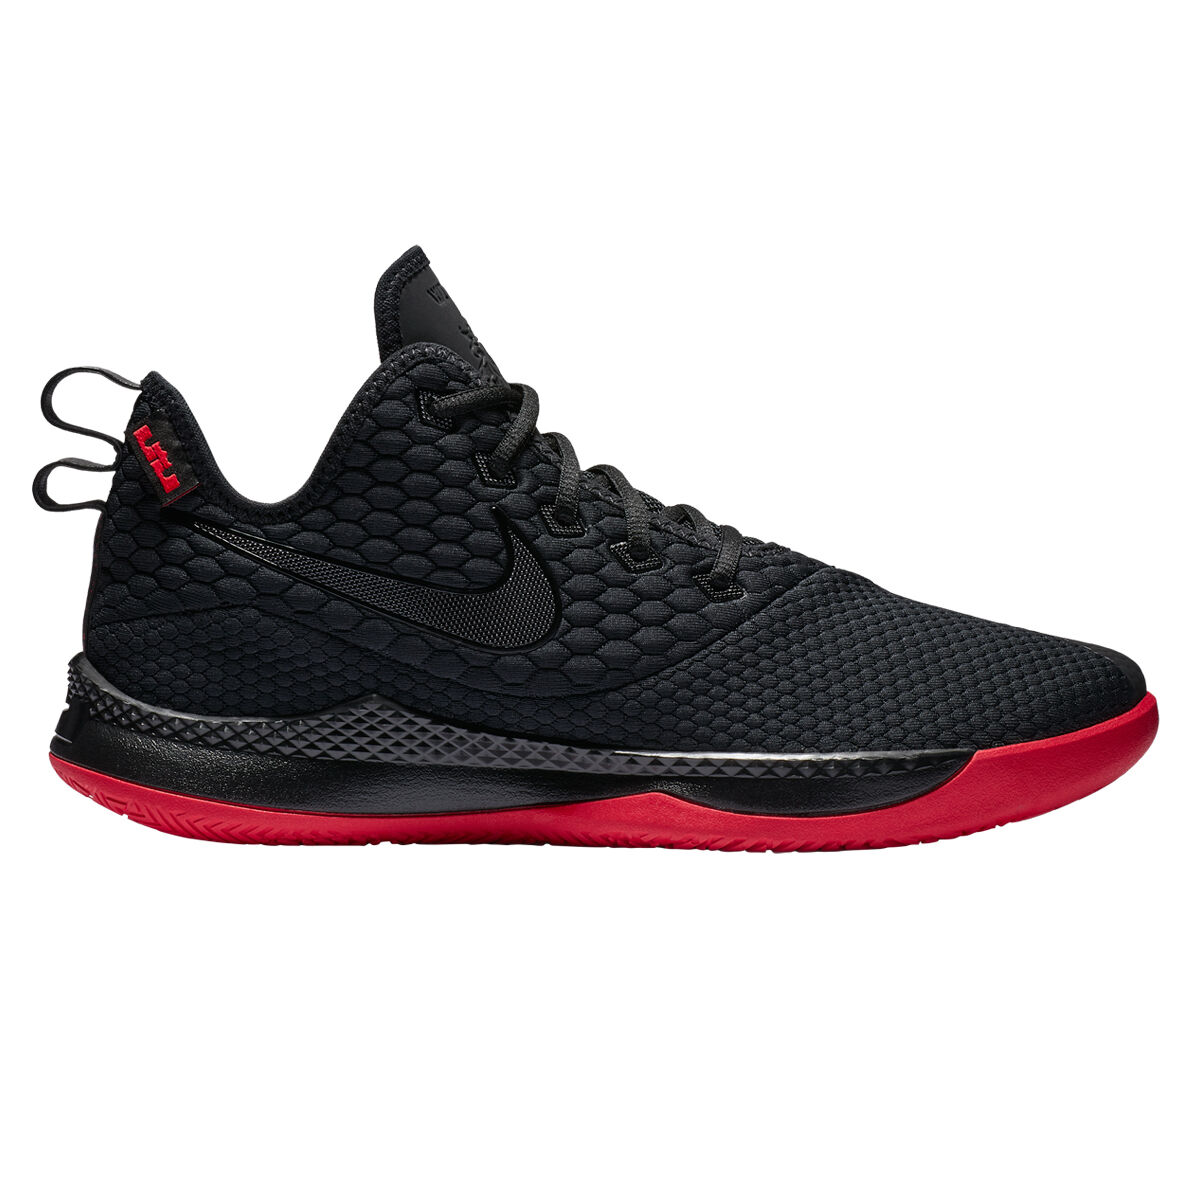 reputable site a4ea1 8fceb wholesale 860634 100 nike lebron 14 xiv bhm black history month 12 a761d  3623c  sweden nike lebron witness iii mens basketball shoes black red us 7  black ...